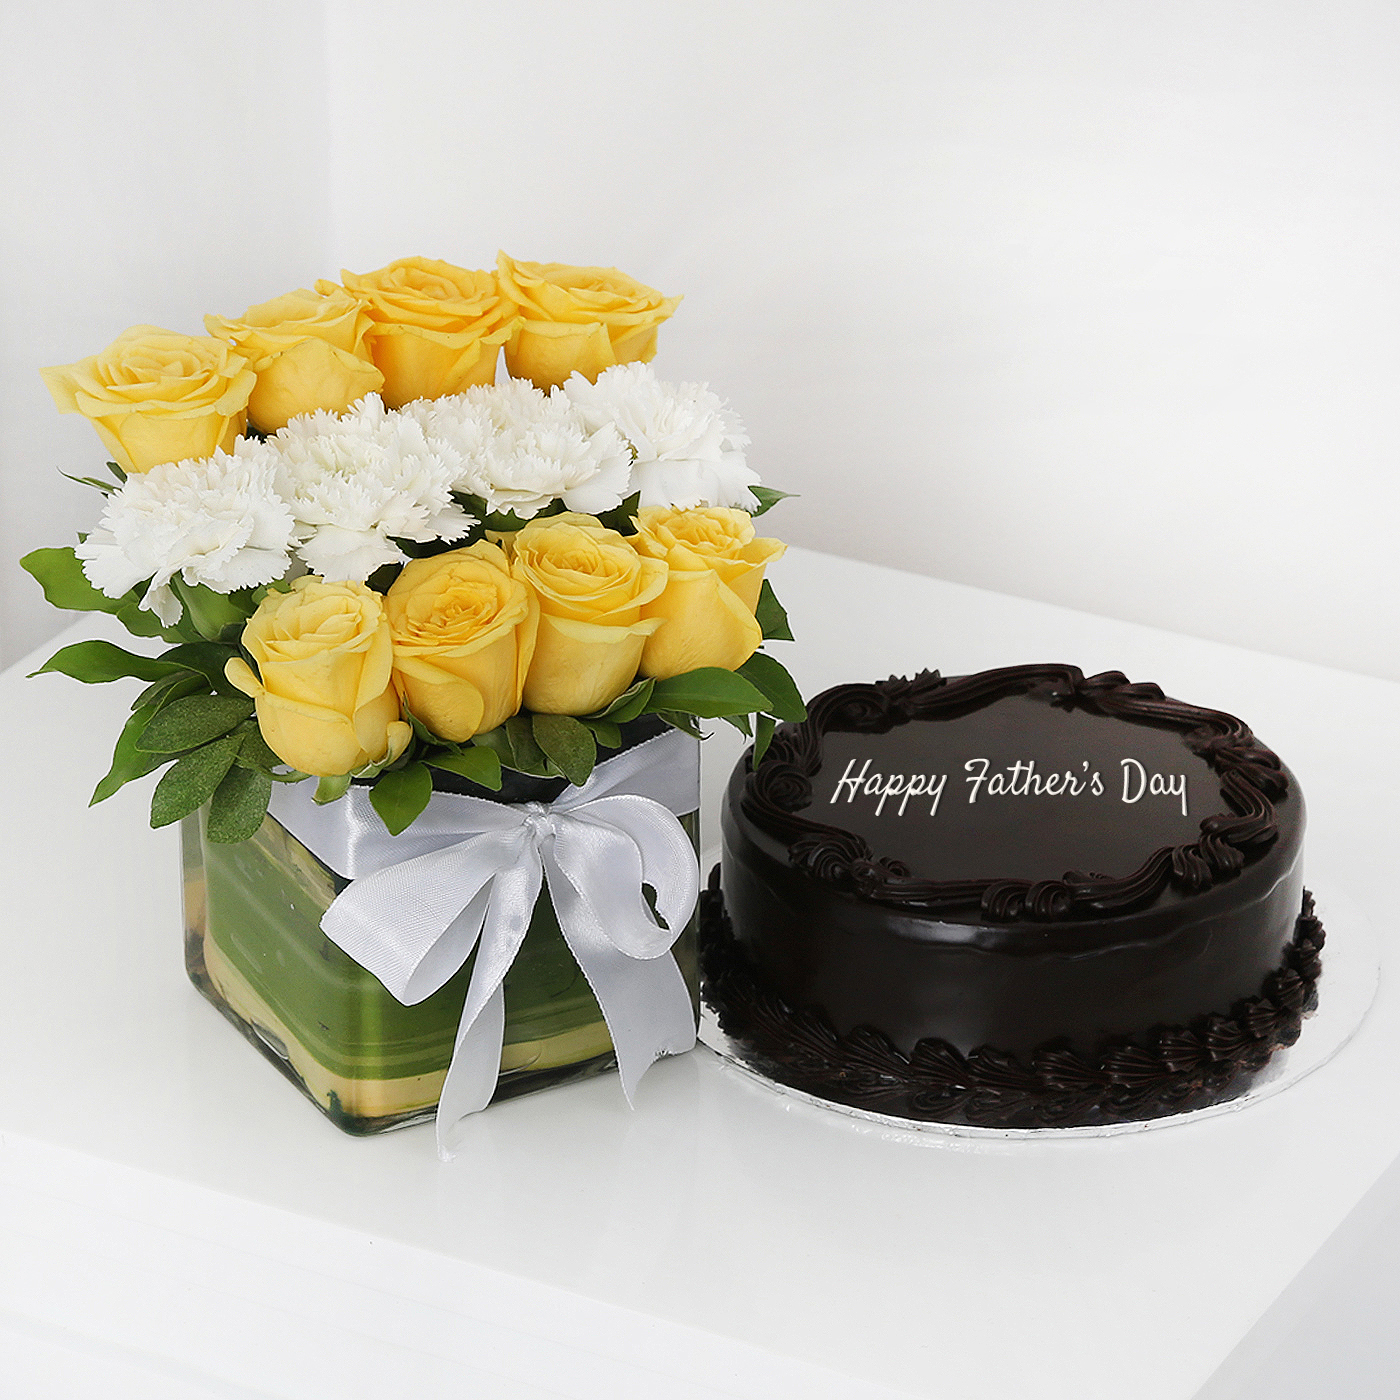 p-glass-vase-of-12-mixed-flowers-with-half-kg-dark-chocolate-cake-34775-m-Uday